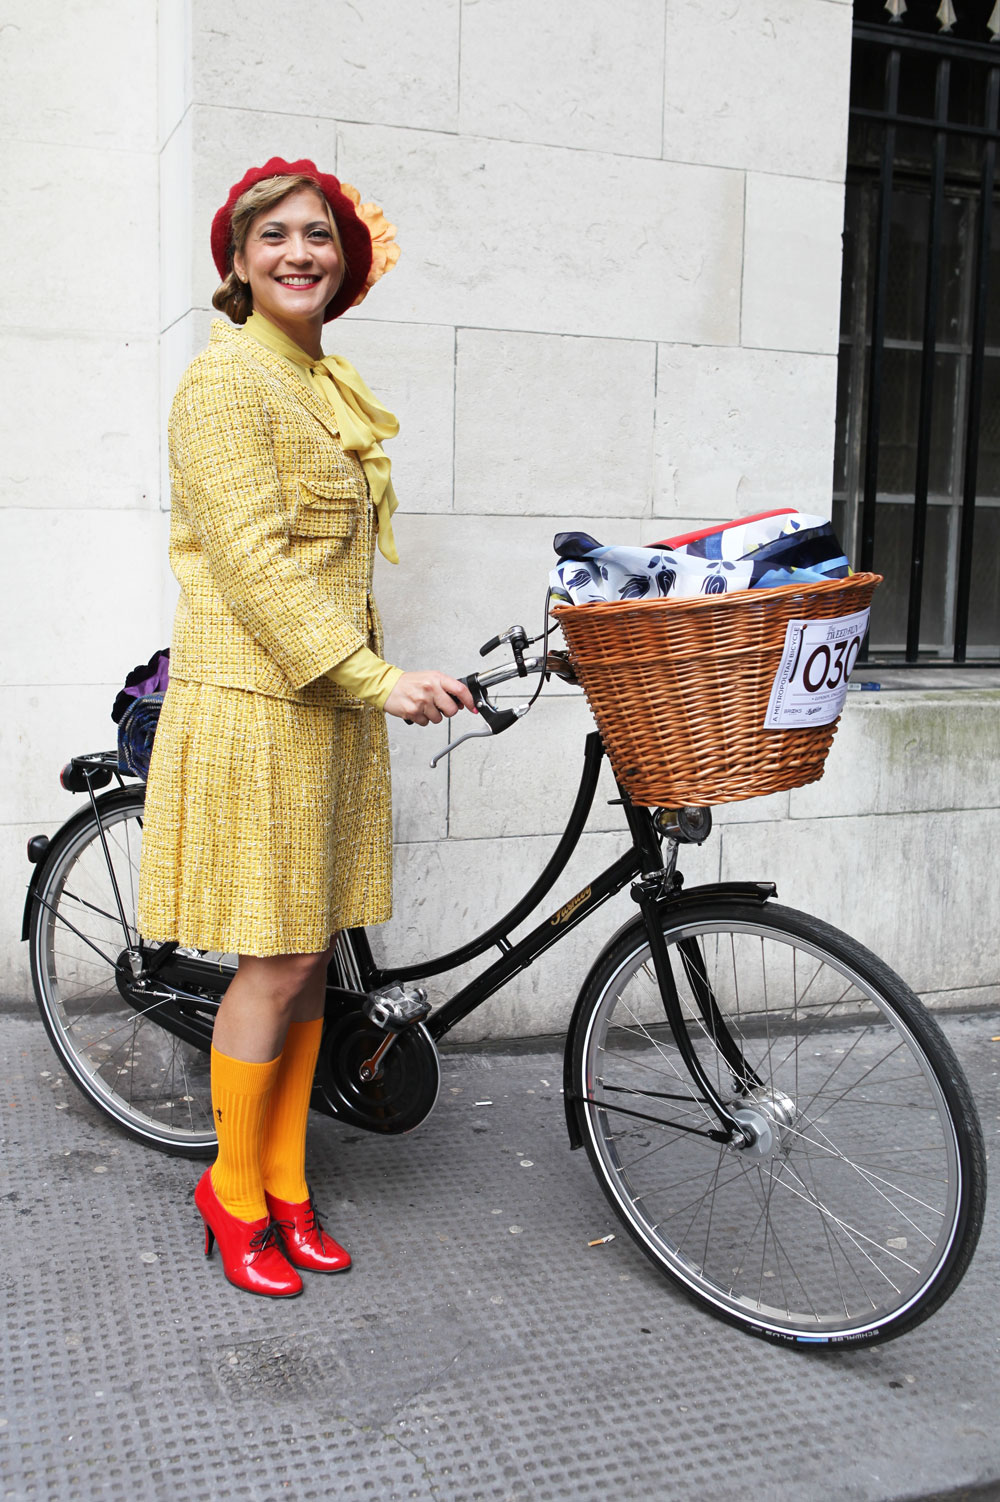 Tweed-Run-London-2014-Bike-Pretty-Most-Dashing-Dame-Bike-Fashion-Photo-Kelly-Miller-3